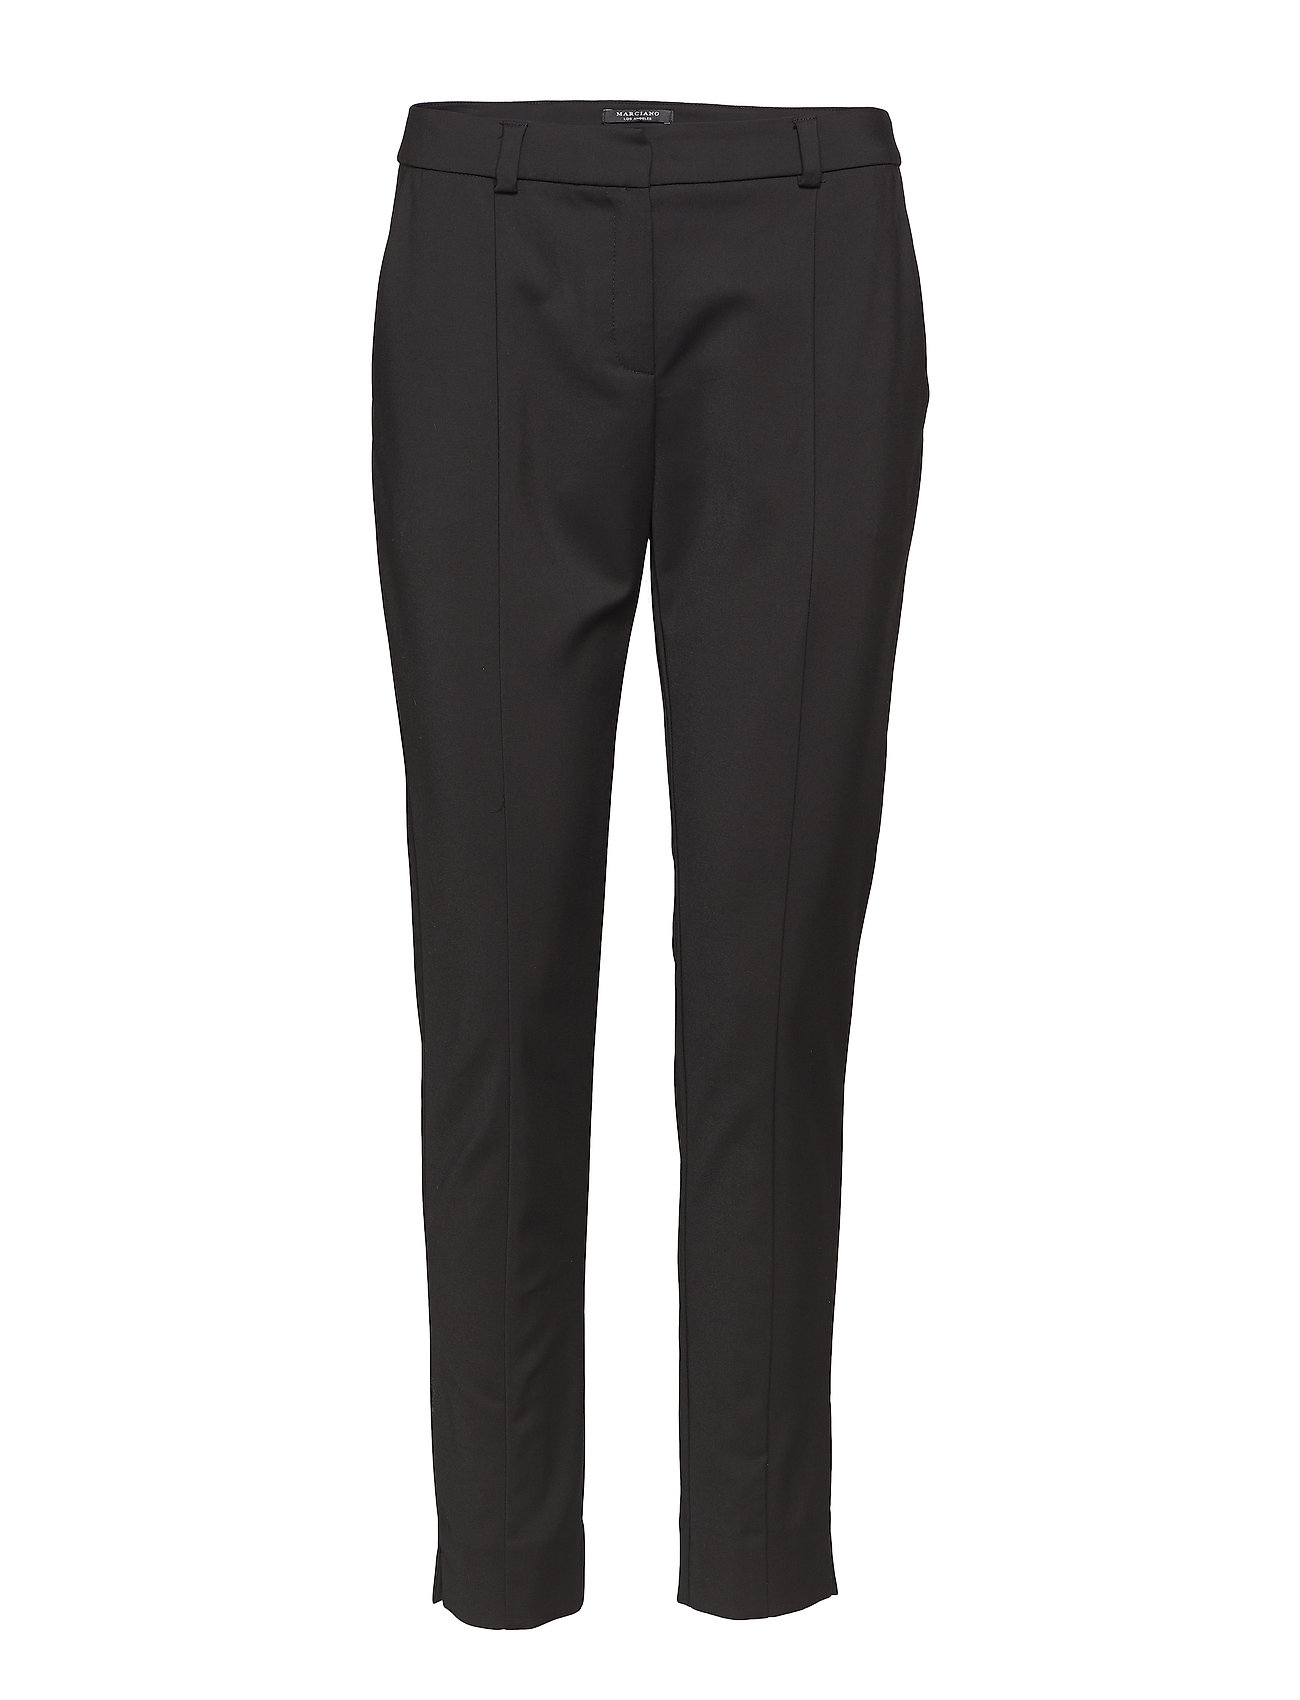 Marciano by GUESS GIOTTO PANT - JET BLACK A996